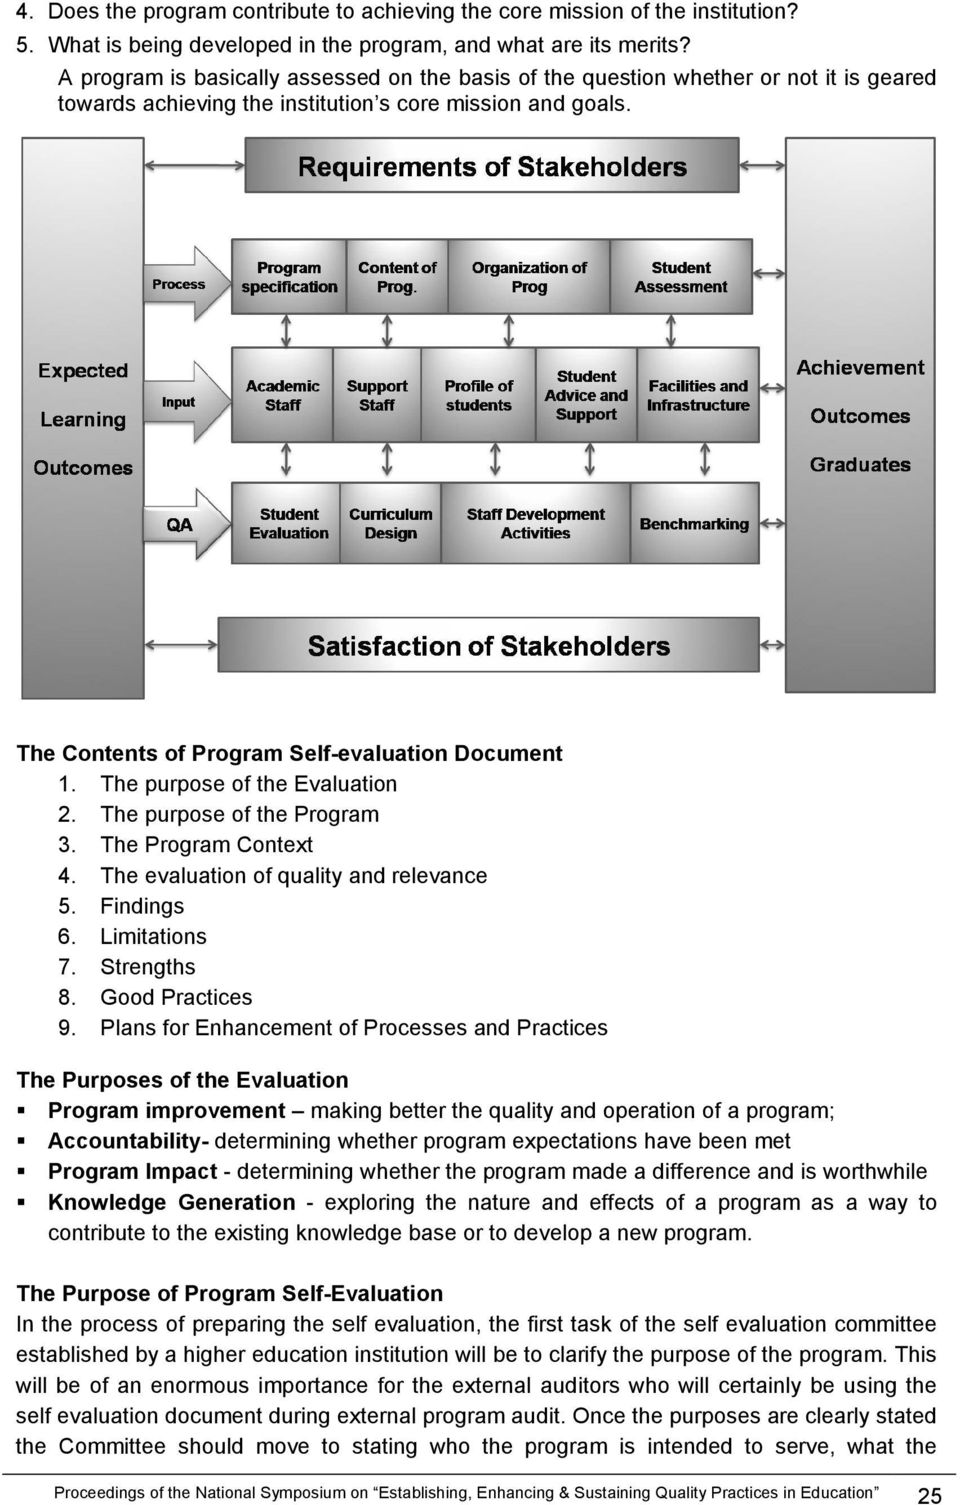 The purpose of the Evaluation 2. The purpose of the Program 3. The Program Context 4. The evaluation of quality and relevance 5. Findings 6. Limitations 7. Strengths 8. Good Practices 9.